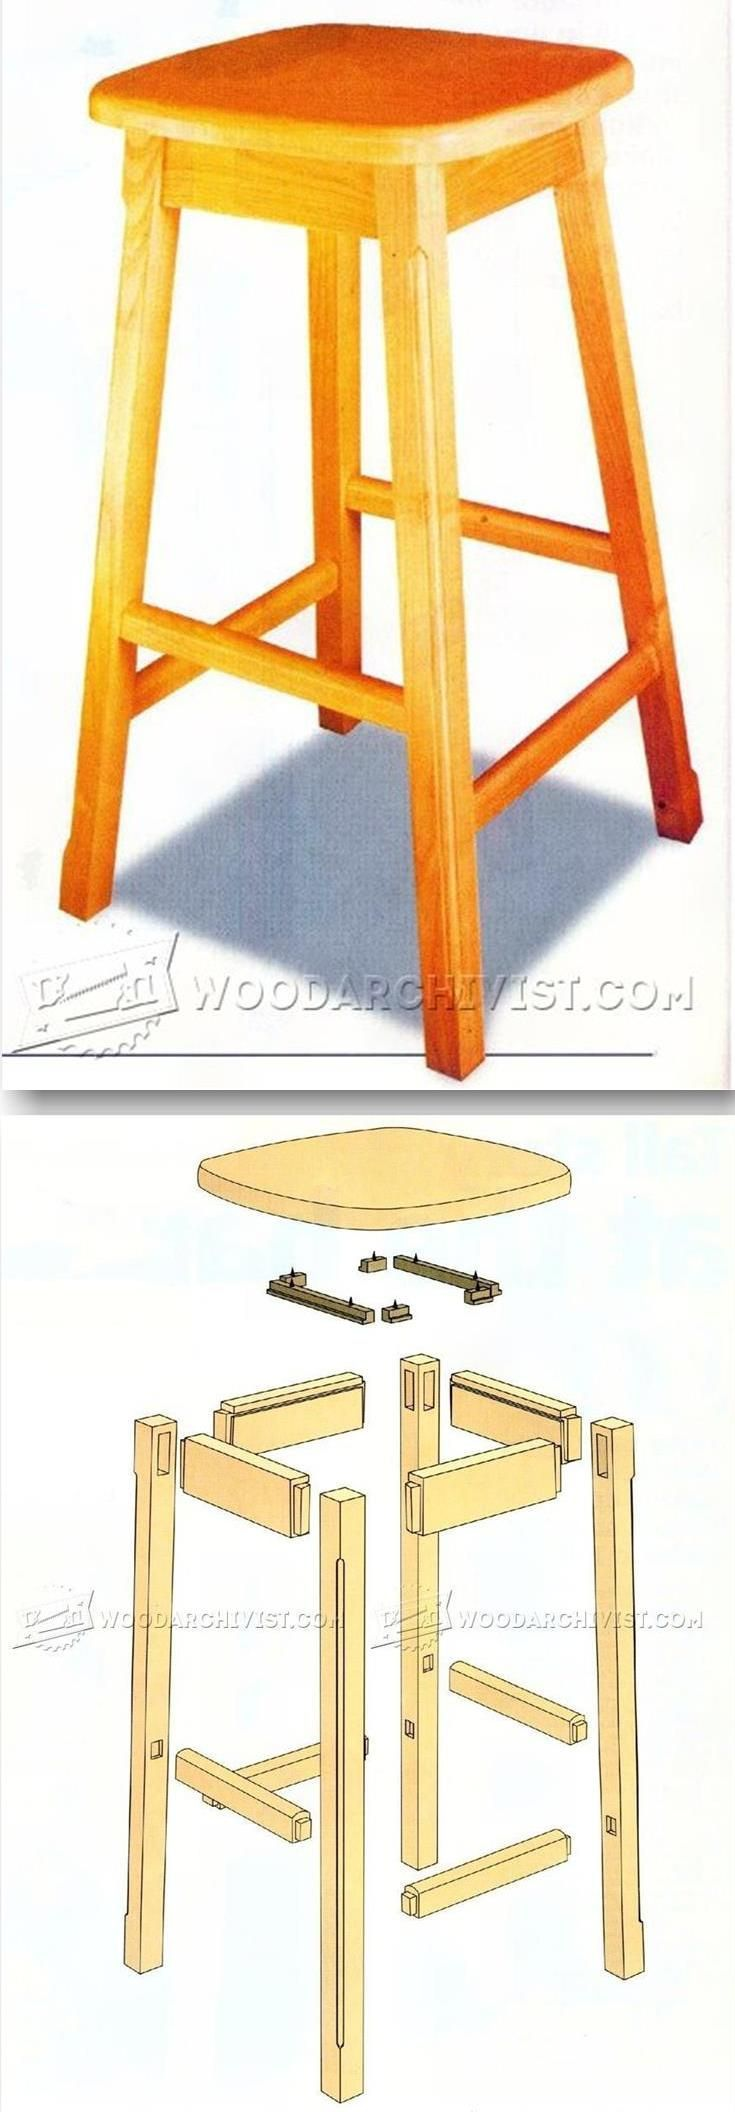 Kitchen stool plans furniture plans and projects ft - Idee bricolage en bois ...